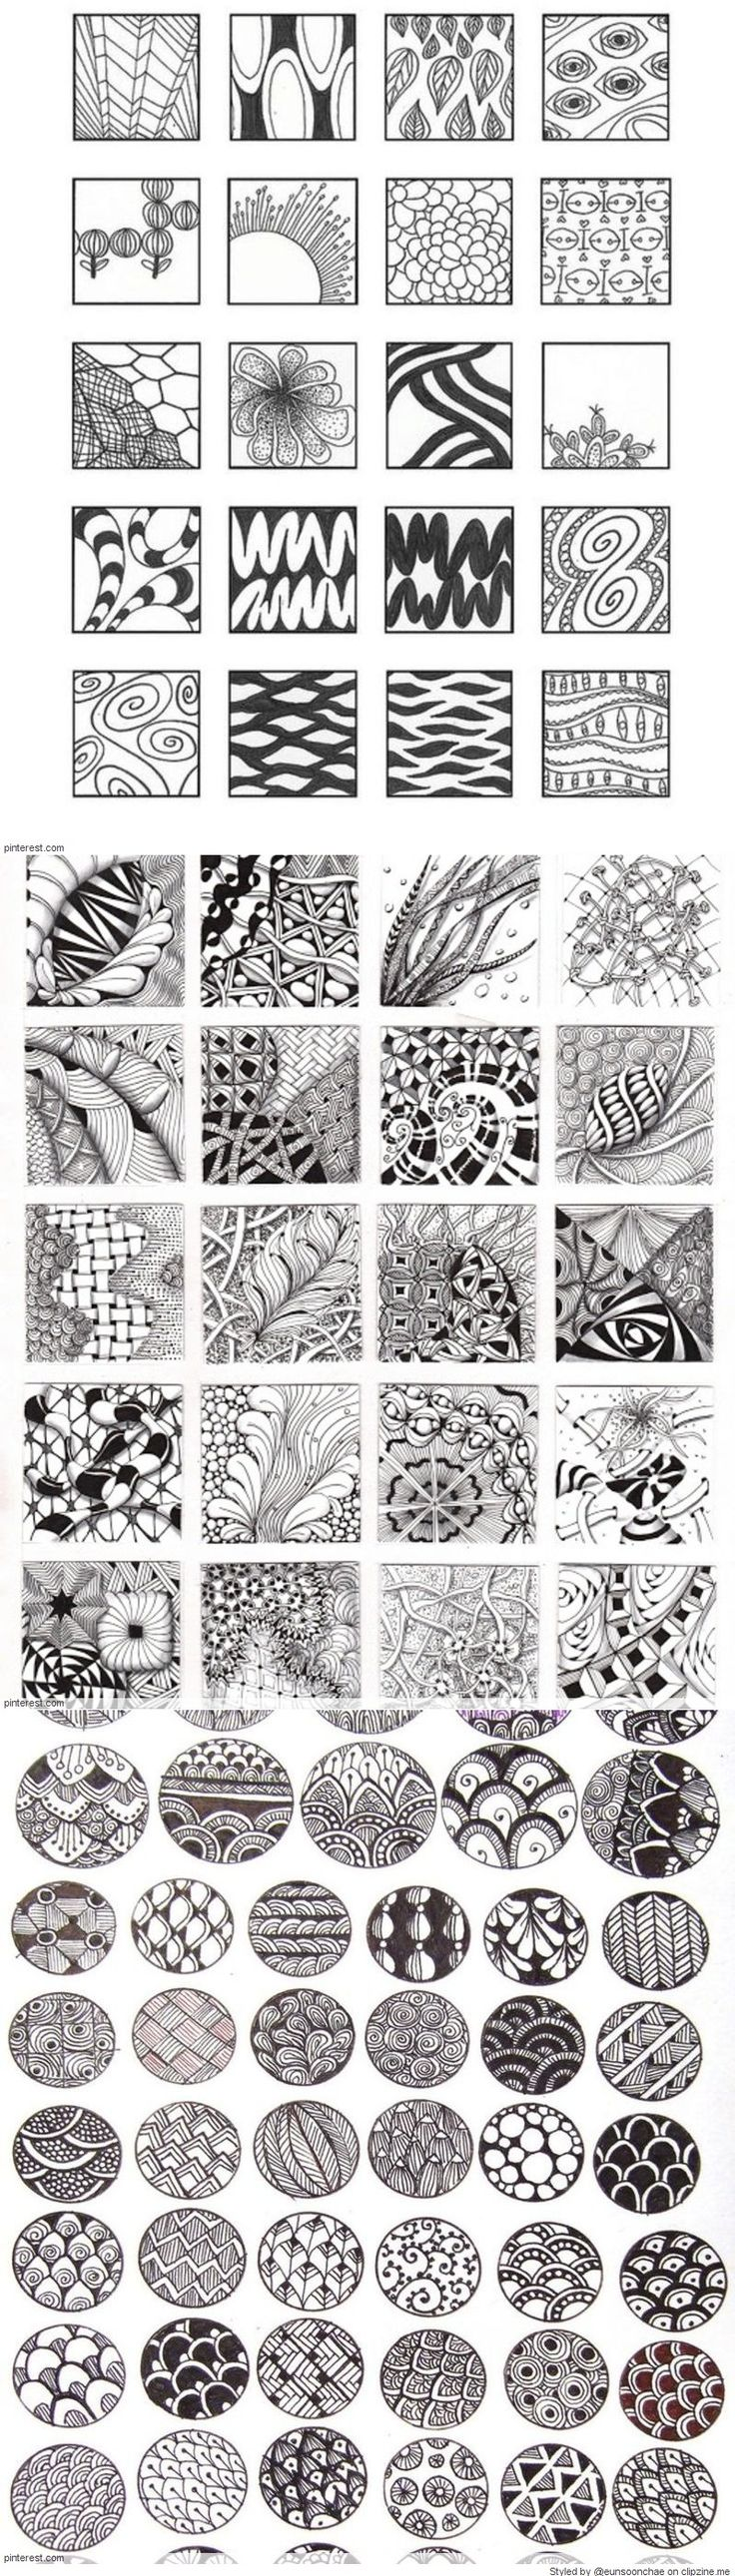 Zentangle Patterns & Ideas